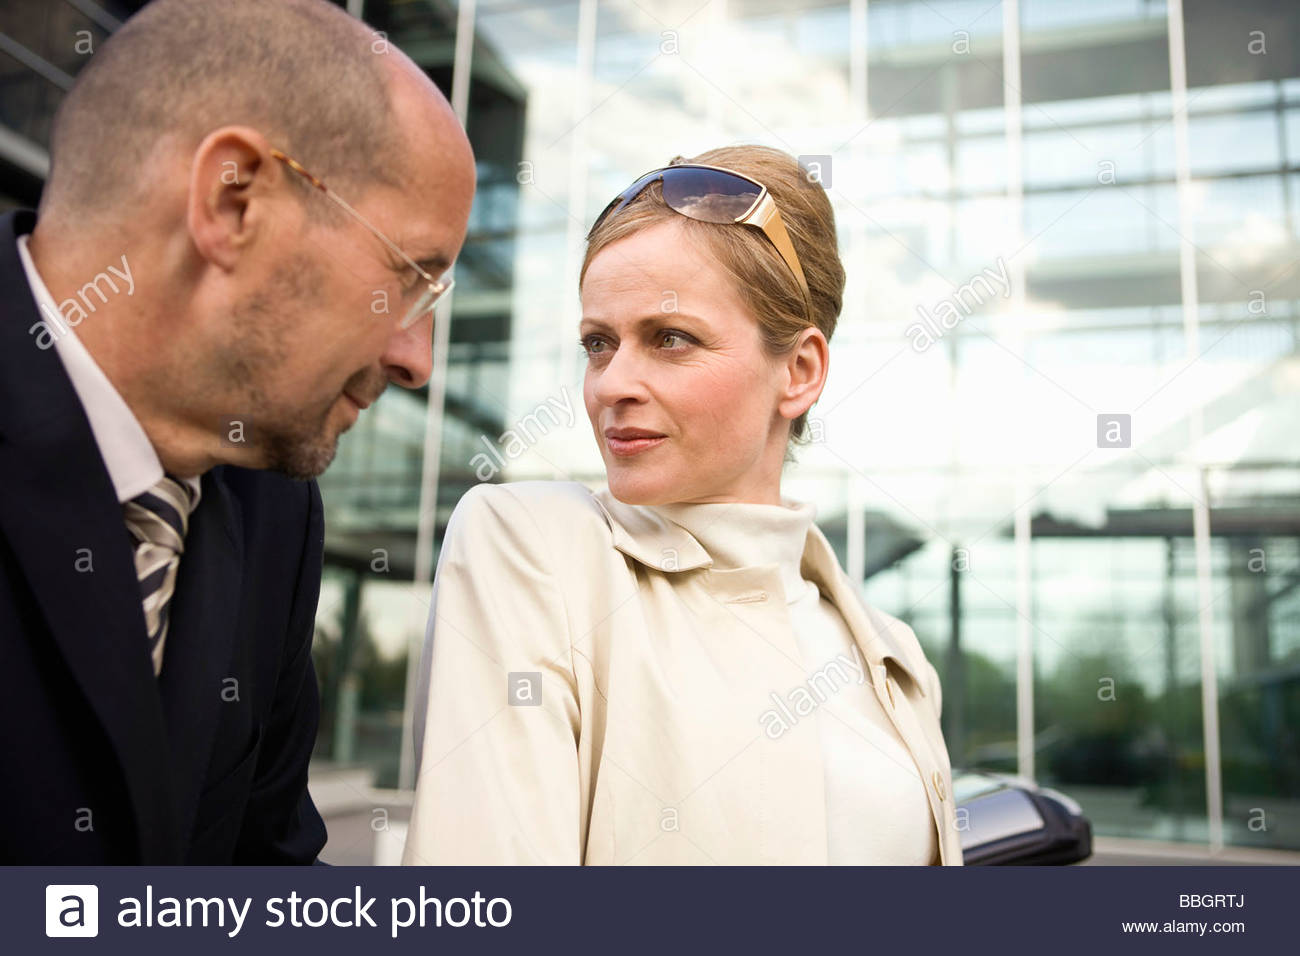 Mature adult couple urban scene looking at each other, Munich, Germany - Stock Image